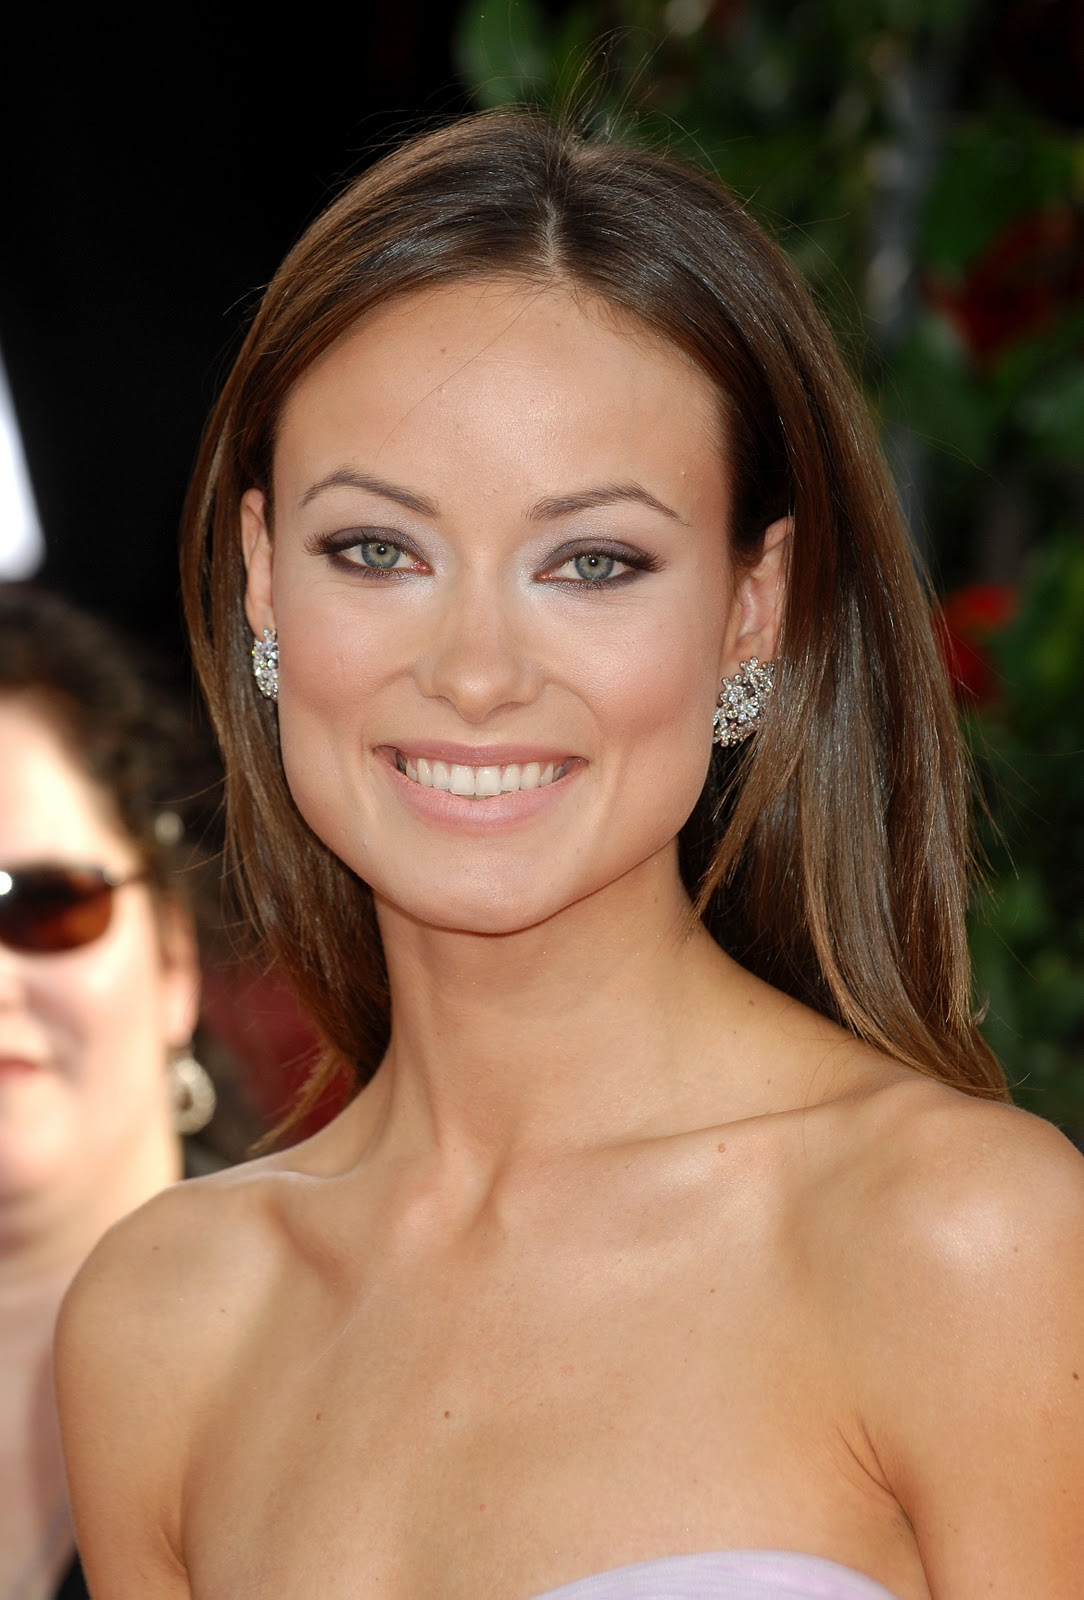 Olivia Wilde Profile And New Pictures 2013: Olivia Wilde Special Pictures (10)